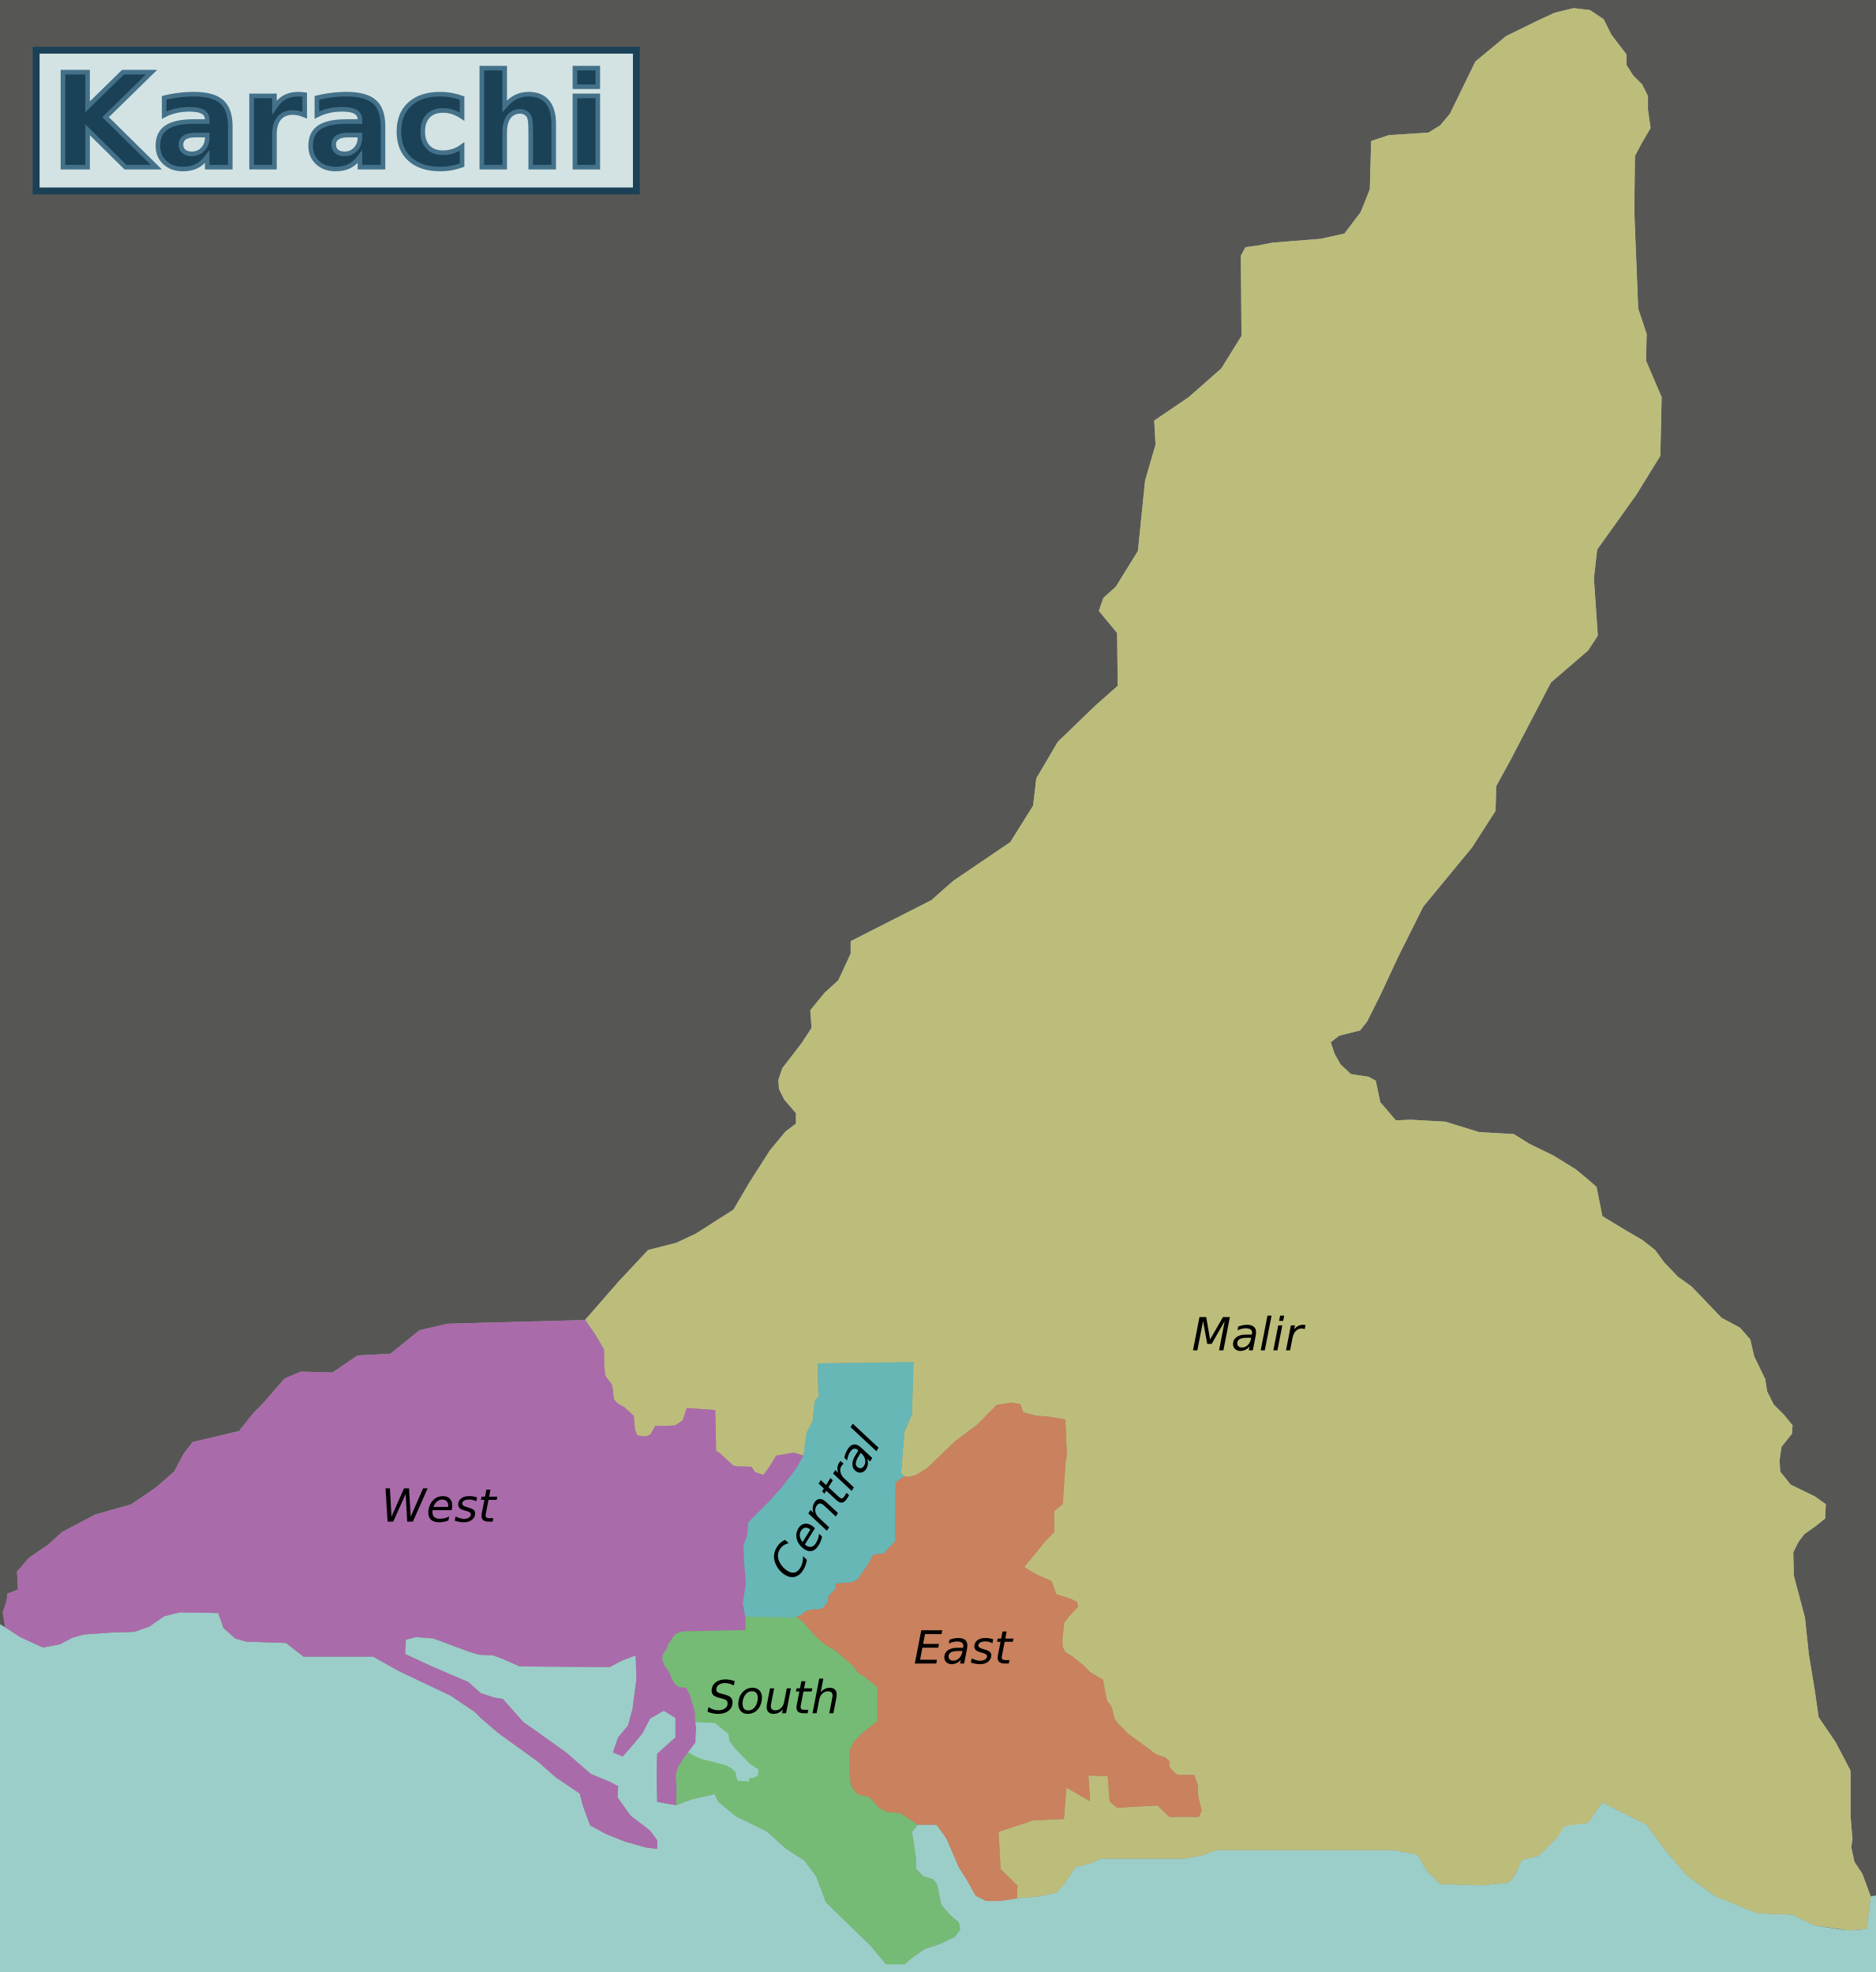 File:Karachi map.png - Wikipedia on lahore world map, moscow on world map, paris world map, shanghai on world map, mecca world map, istanbul world map, jerusalem world map, kolkata world map, jakarta world map, cairo world map, pyongyang world map, seoul world map, thar desert world map, buenos aires world map, ulaanbaatar world map, hyderabad world map, taipei world map, colombo world map, damascus on world map, kathmandu world map,